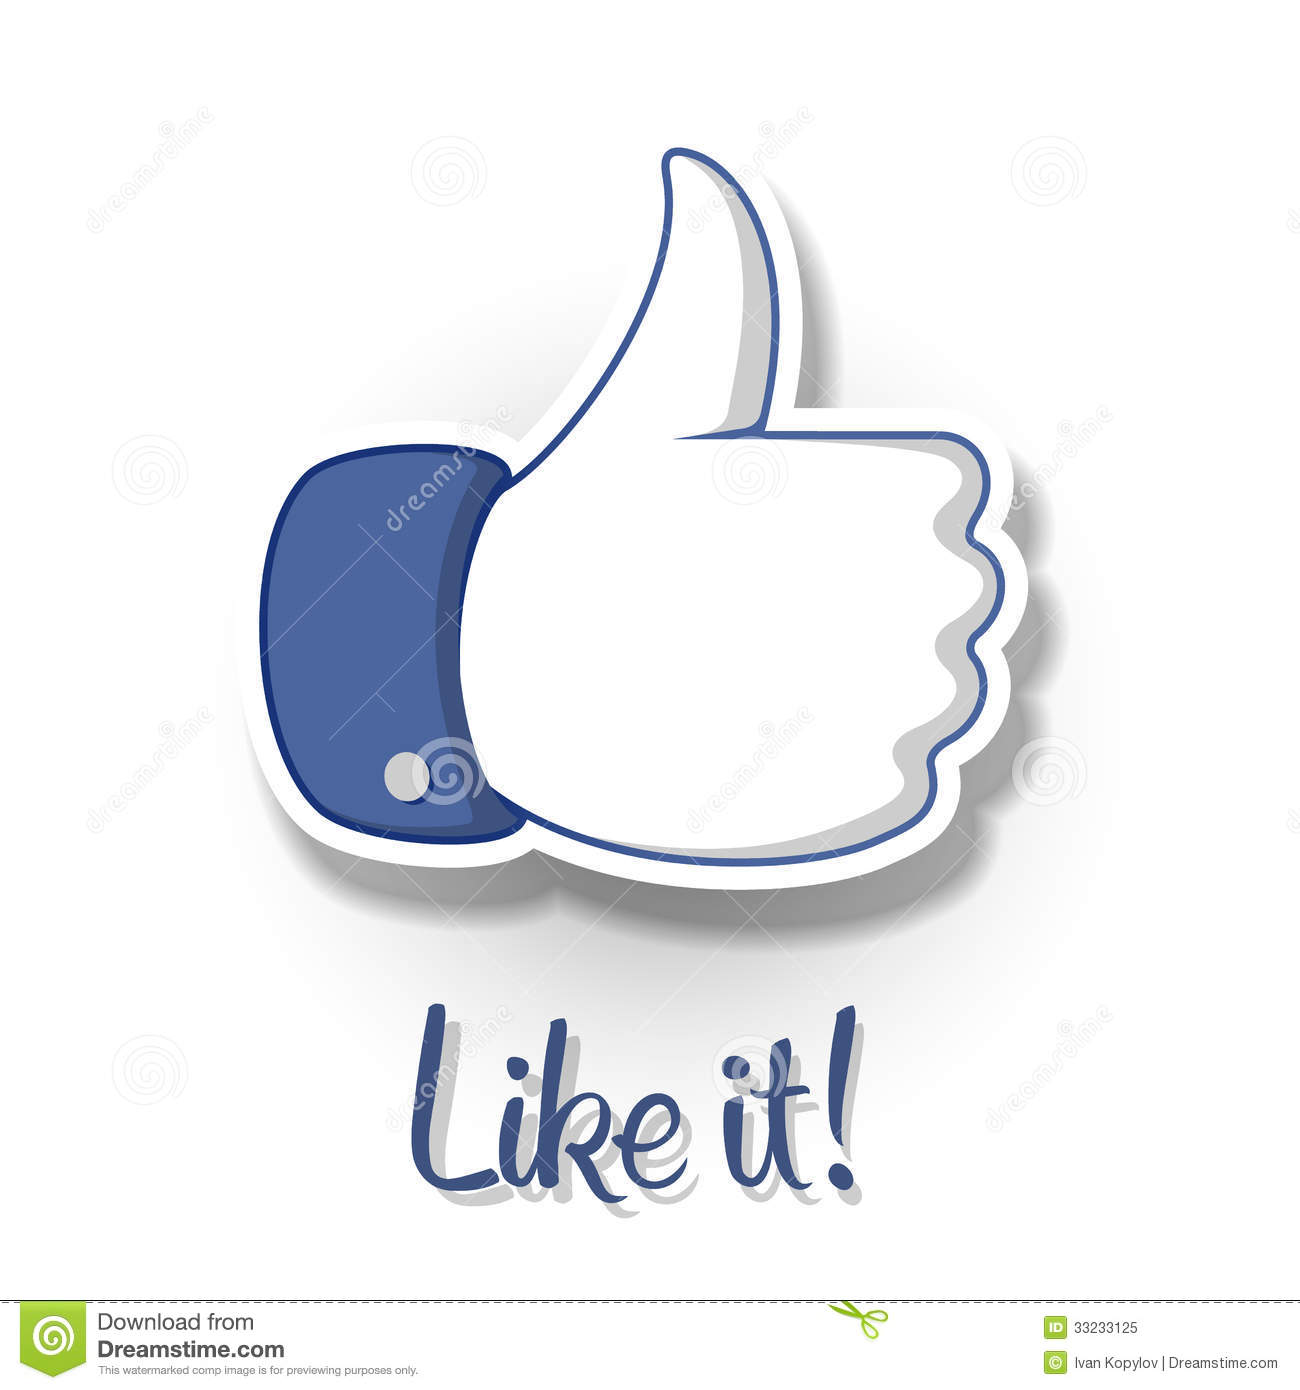 Likethumbs up symbol icon on white background editorial image likethumbs up symbol icon on white background biocorpaavc Gallery